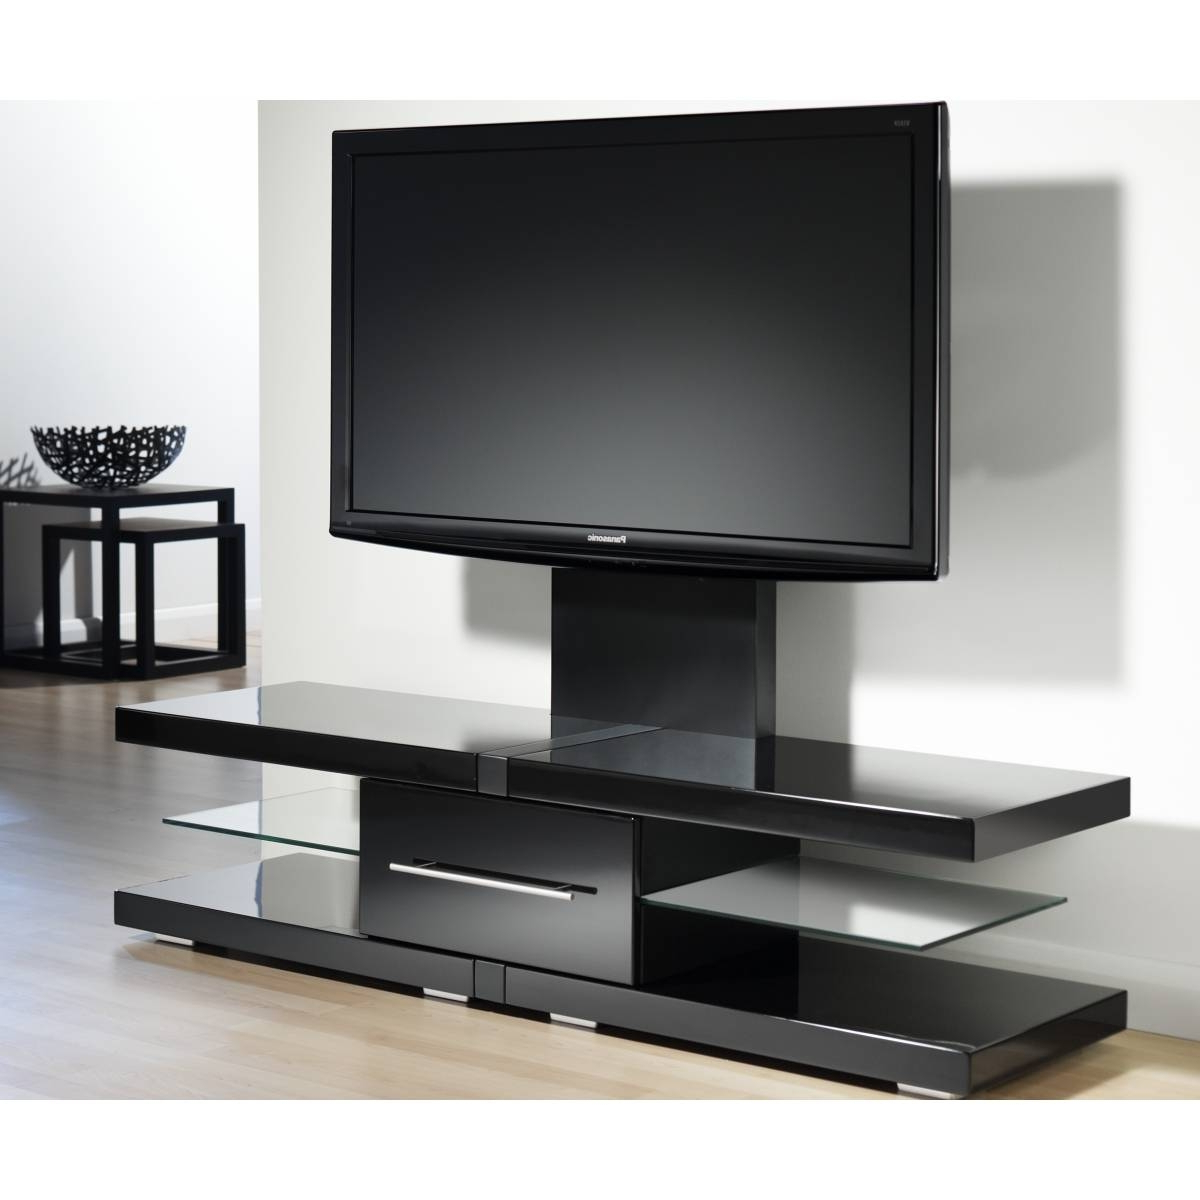 2018 Tv Stands 65 Inch Stand 60 Entertainment Center Big Lots Black 90 48 In Wide Screen Tv Stands (Gallery 10 of 20)